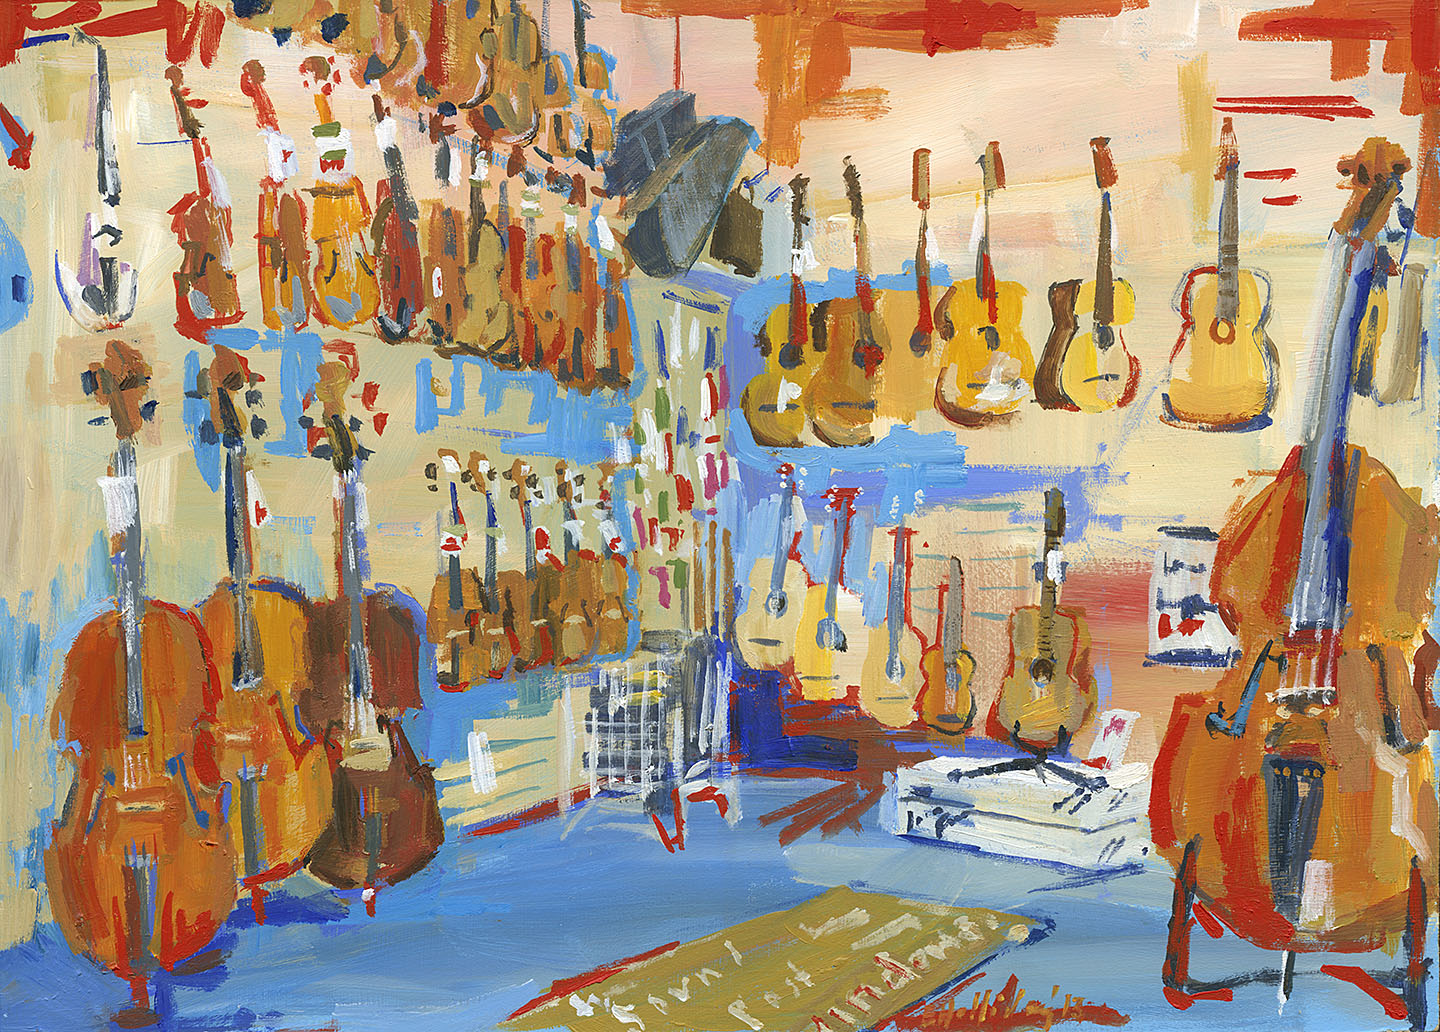 Holliday-JGWindows-Strings-Dept-painting-08